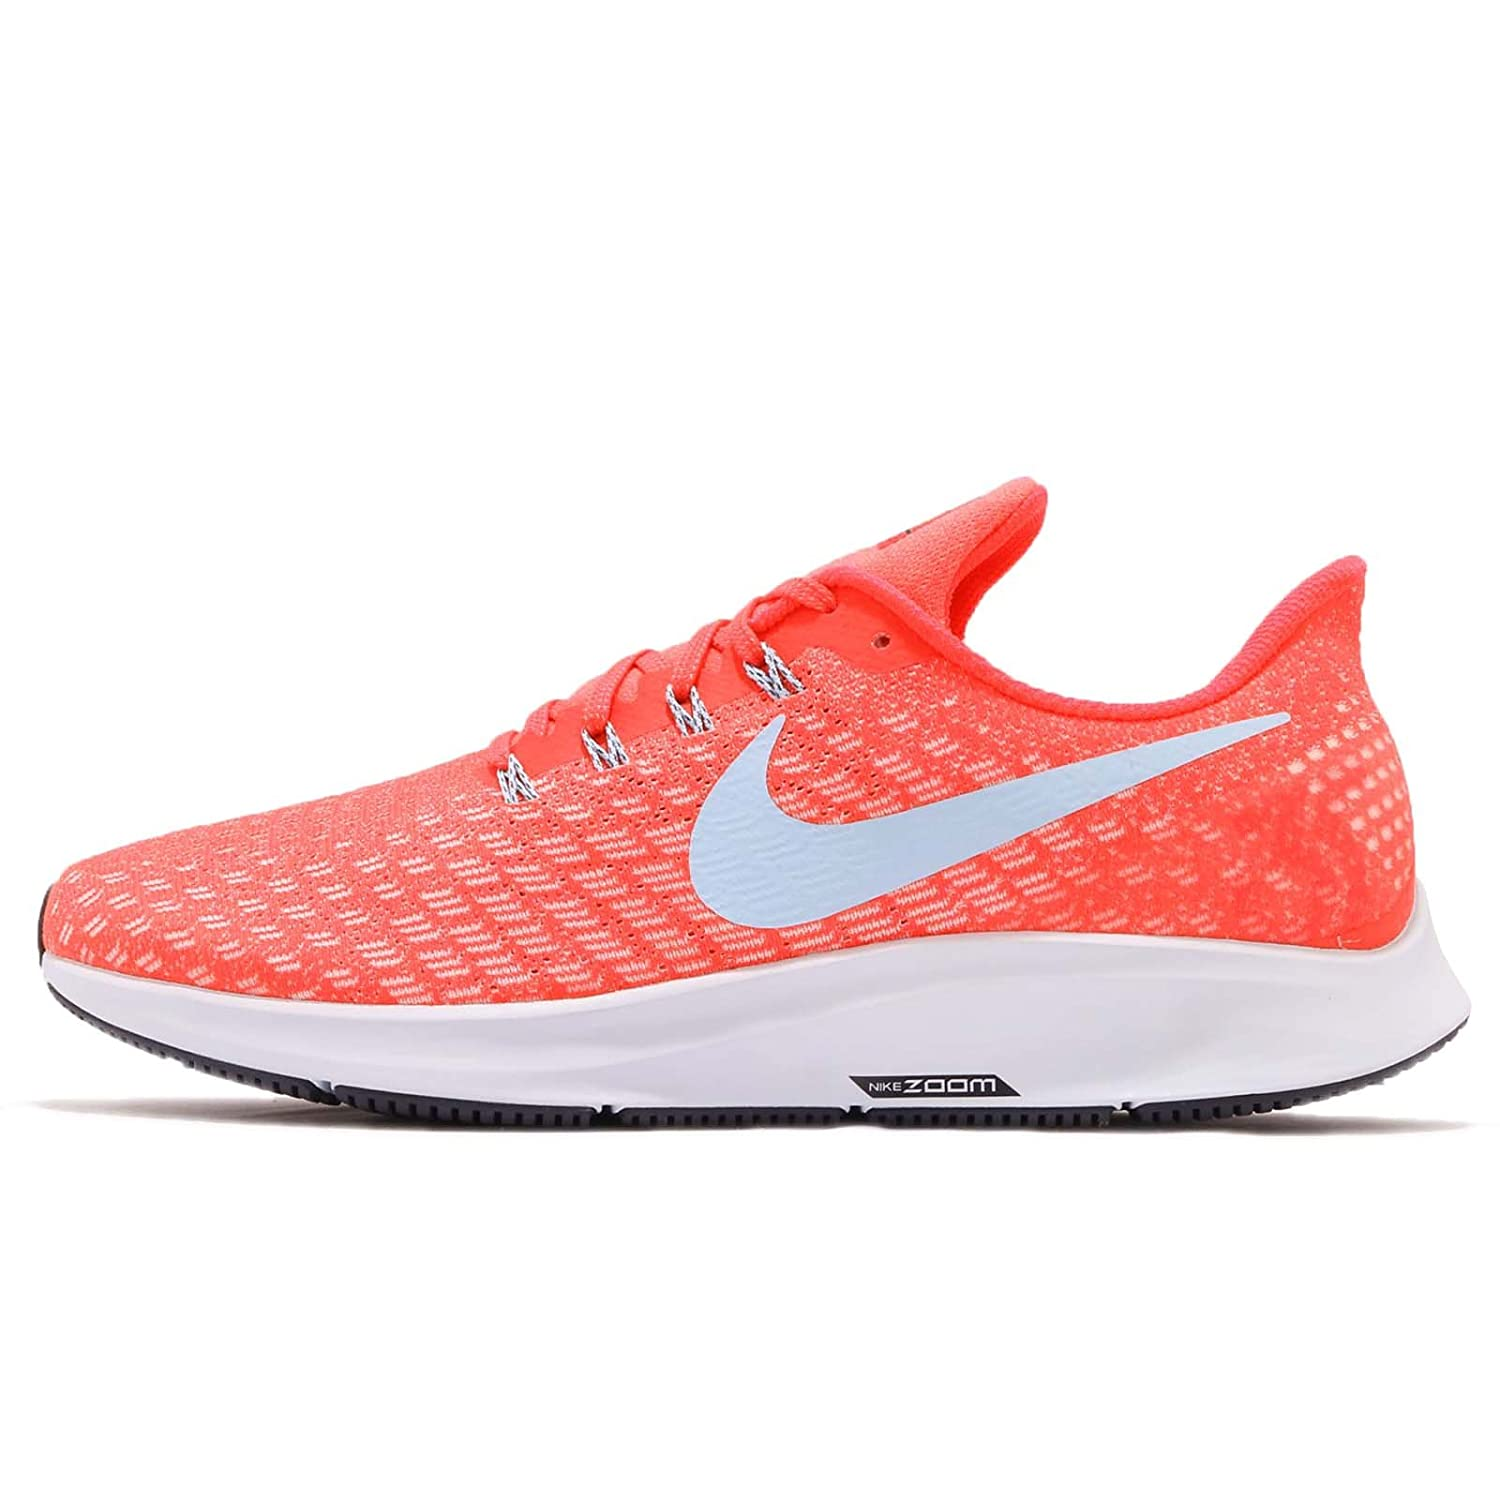 Amazon.com | NIKE - Air Zoom Pegasus 35-942851600 - Color: White-Red-Grey - Size: 15.0 | Athletic